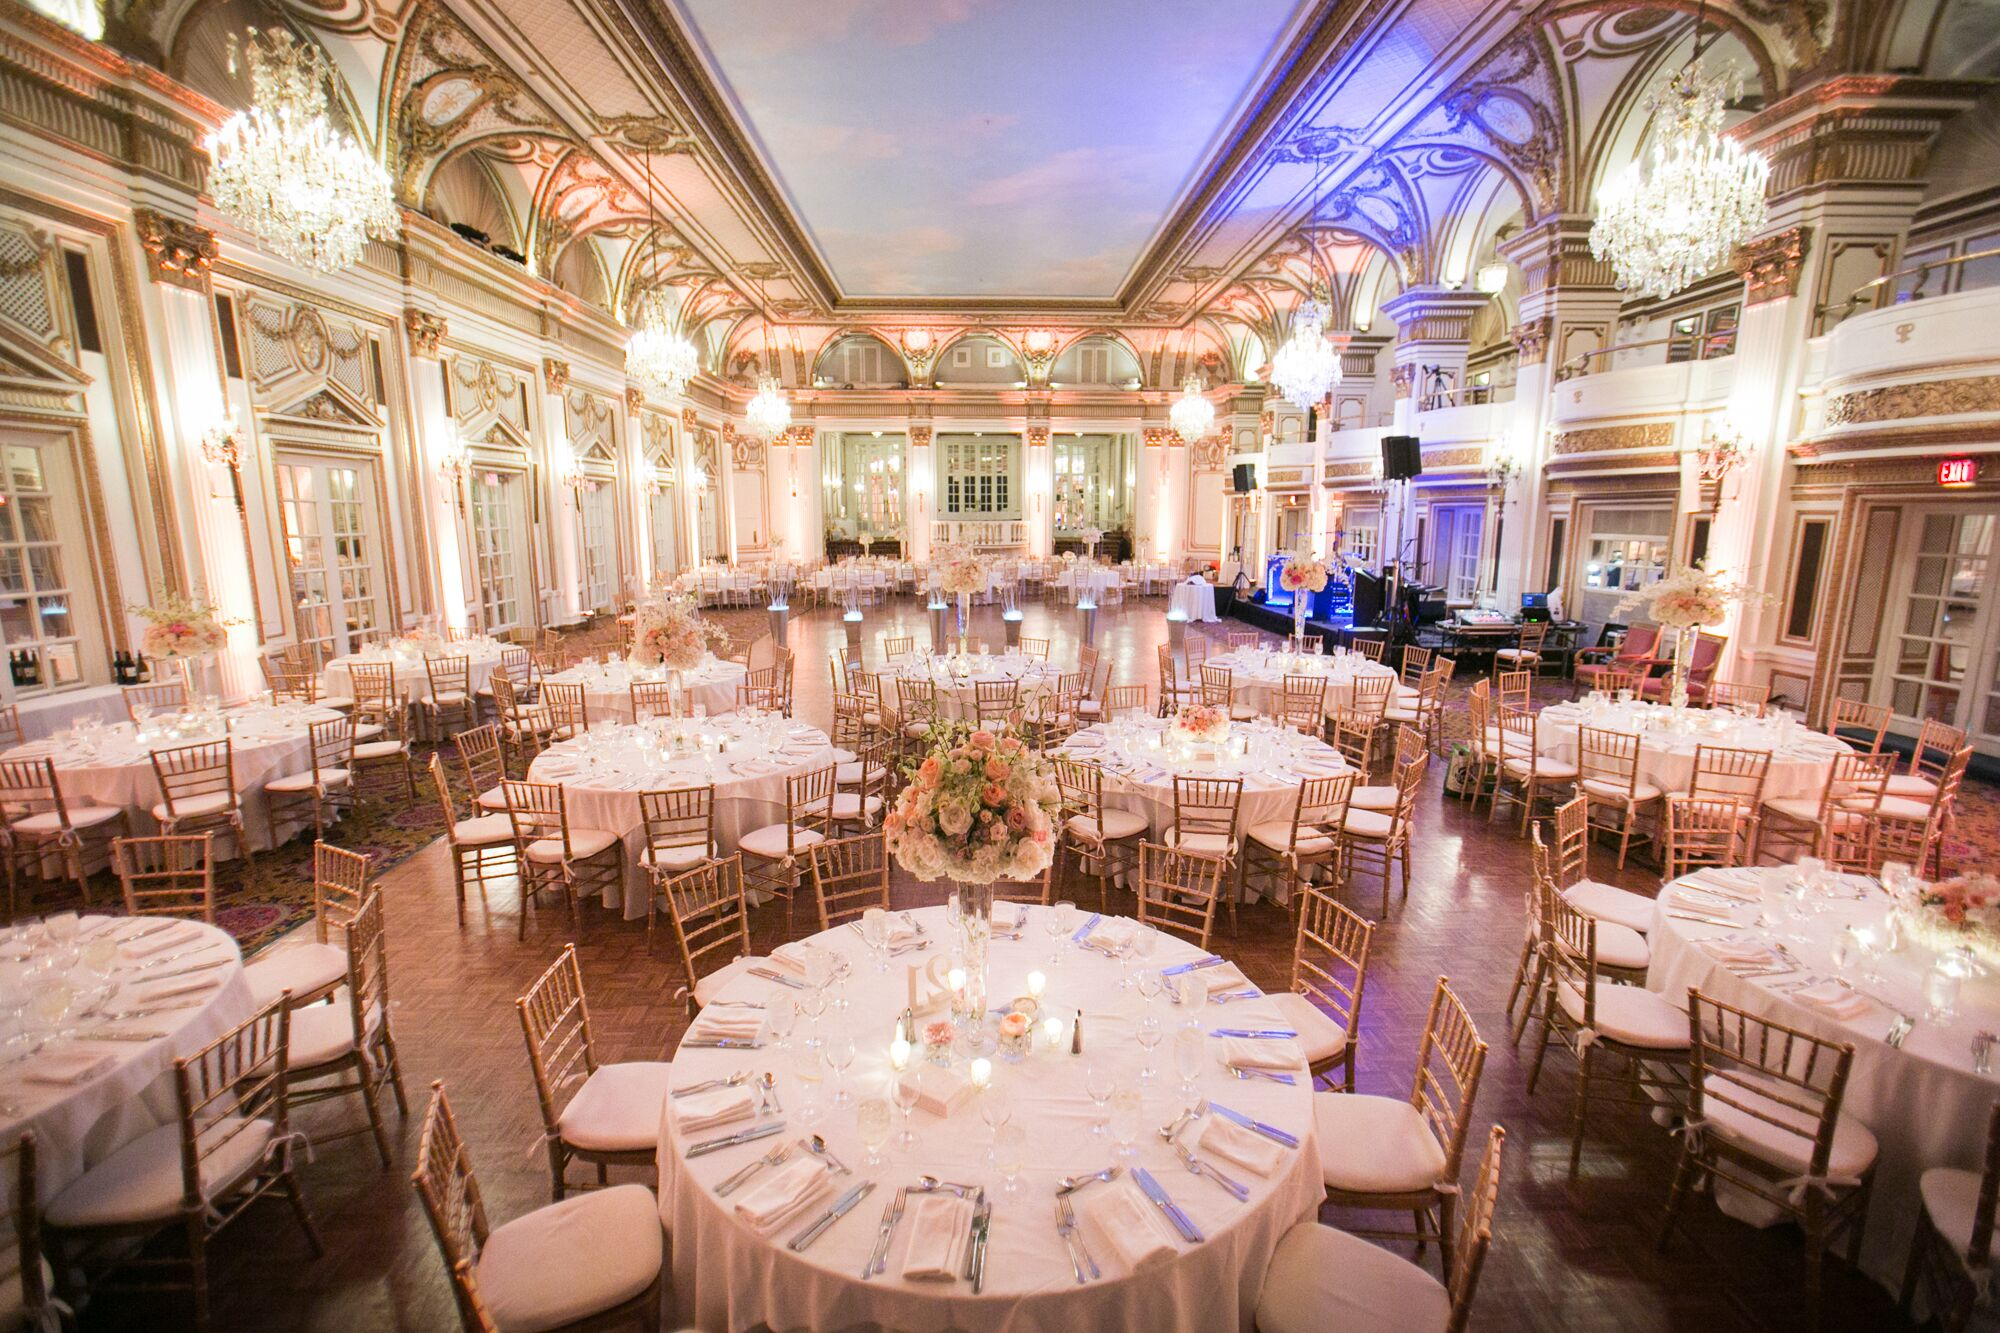 The Fairmont Copley Plaza Ballroom Wedding Reception